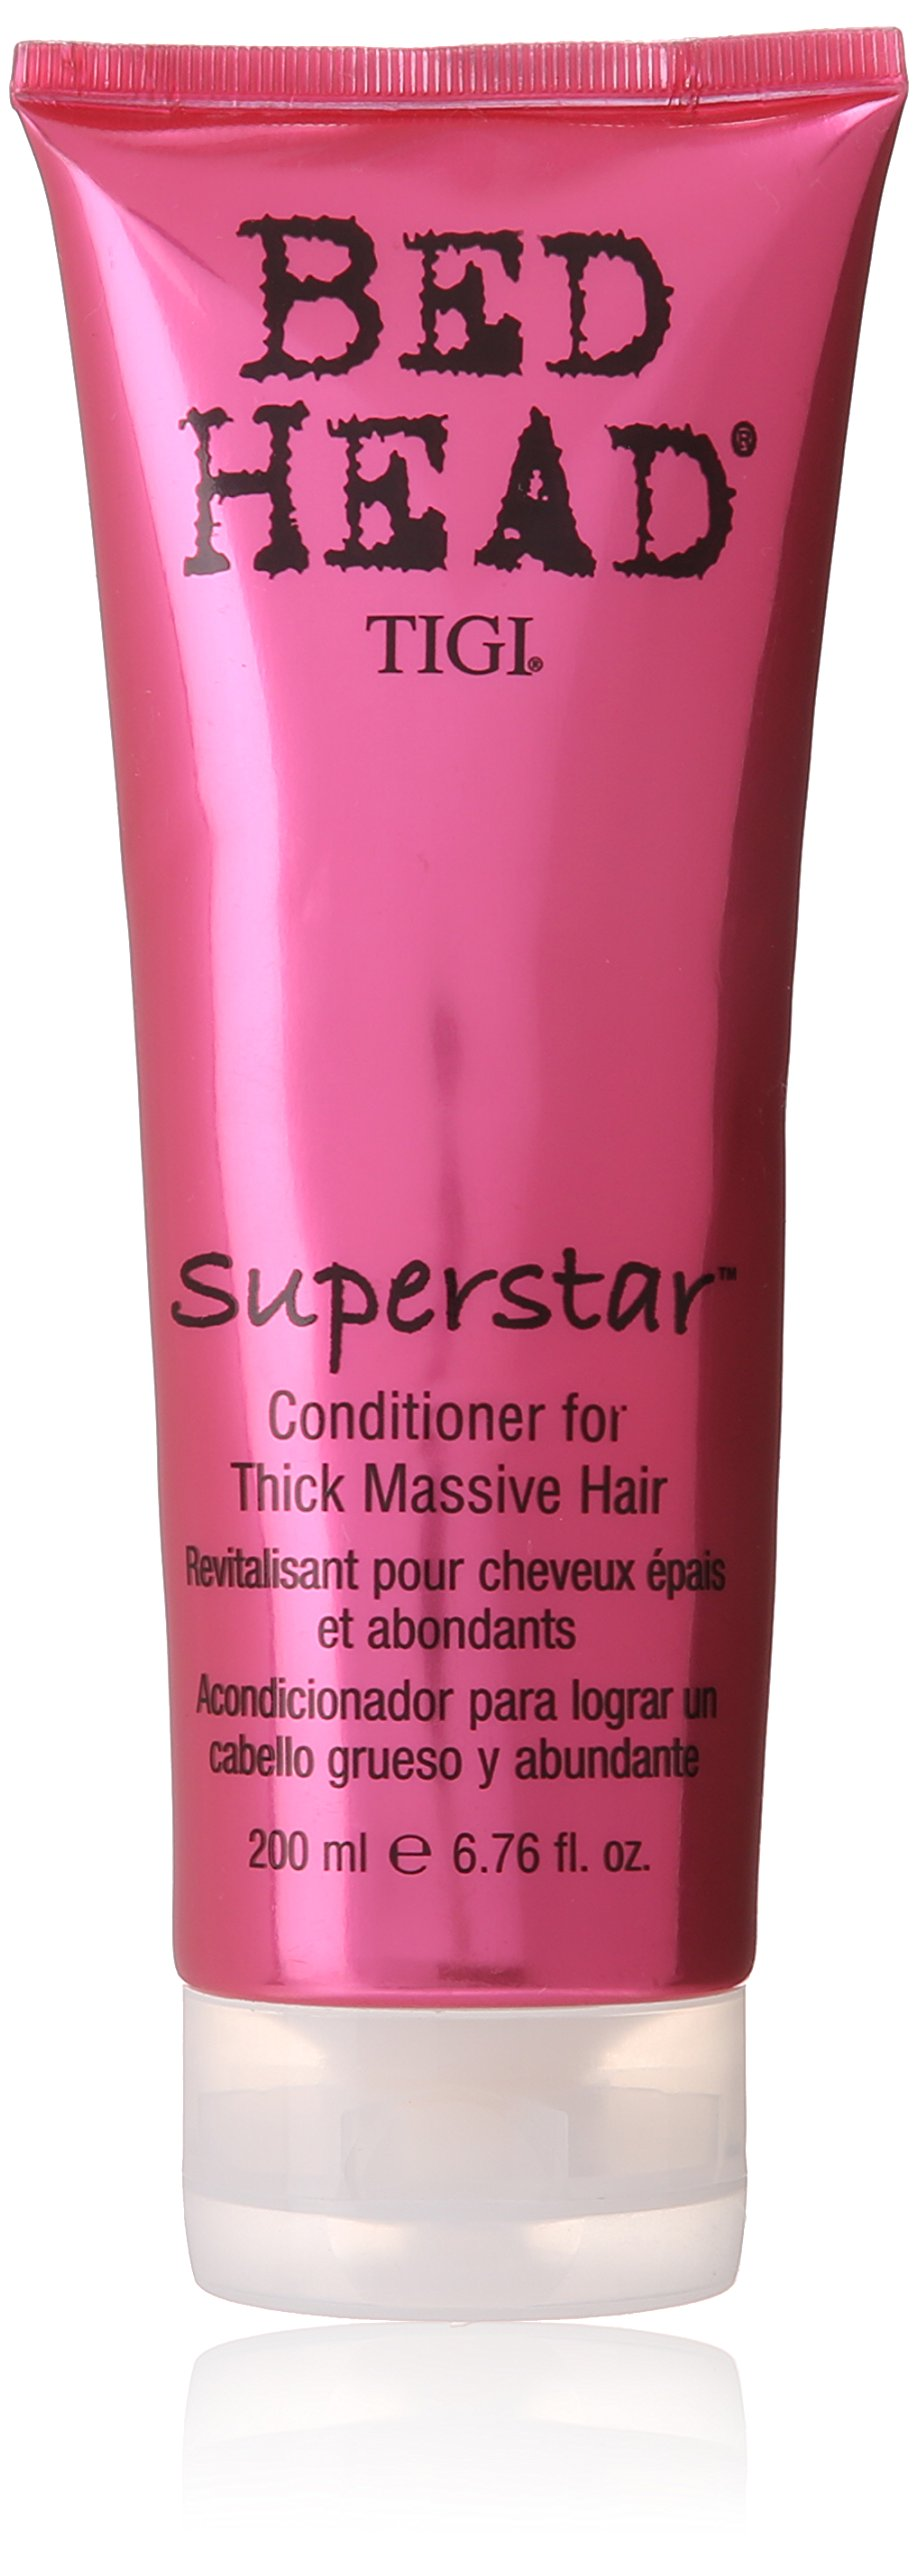 bed head superstar shampoo